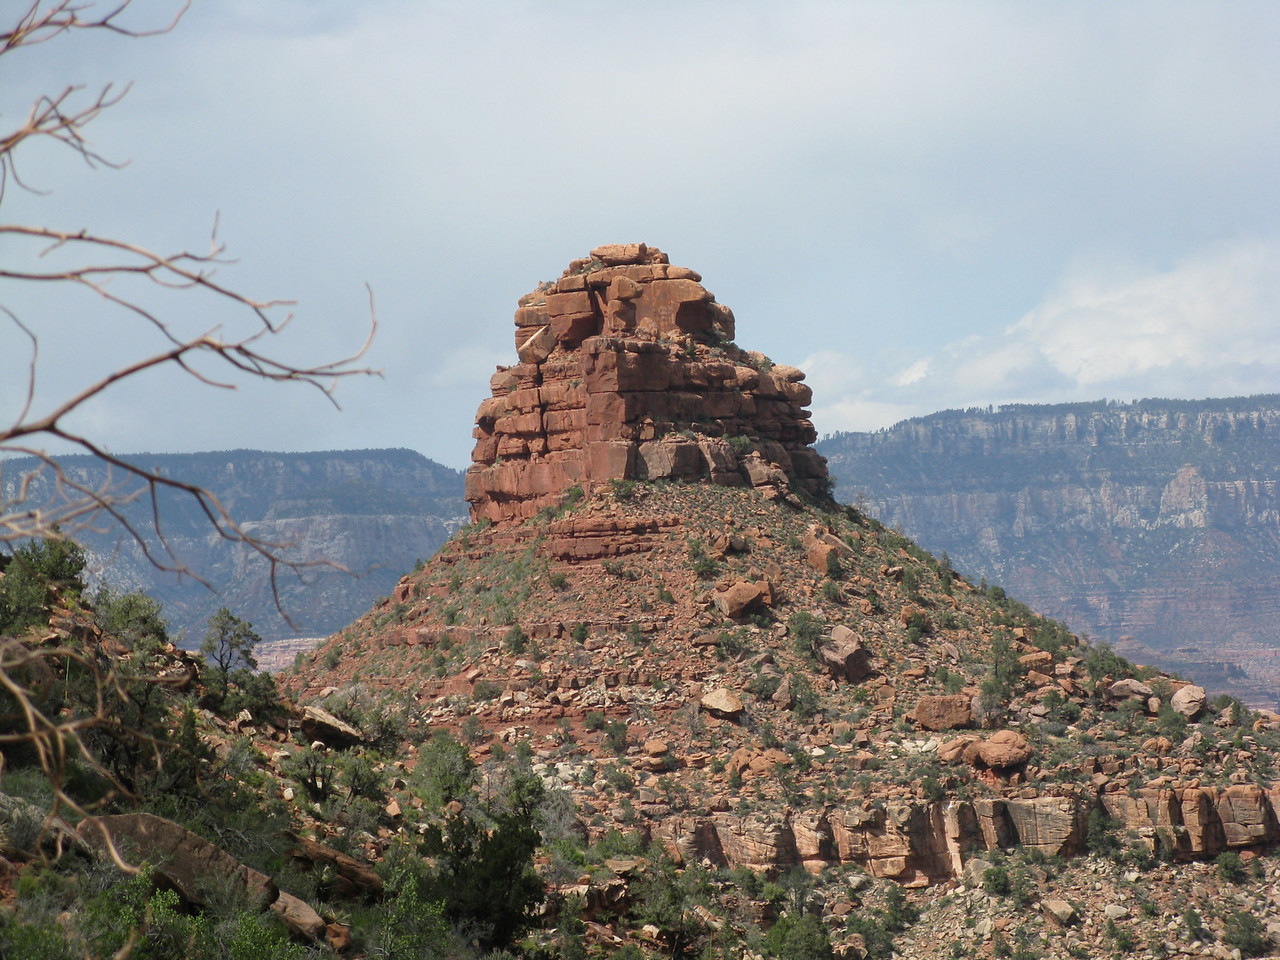 Looking northwest to the butte in the Supai Group of rocks.  This rock formation is named The Battleship.